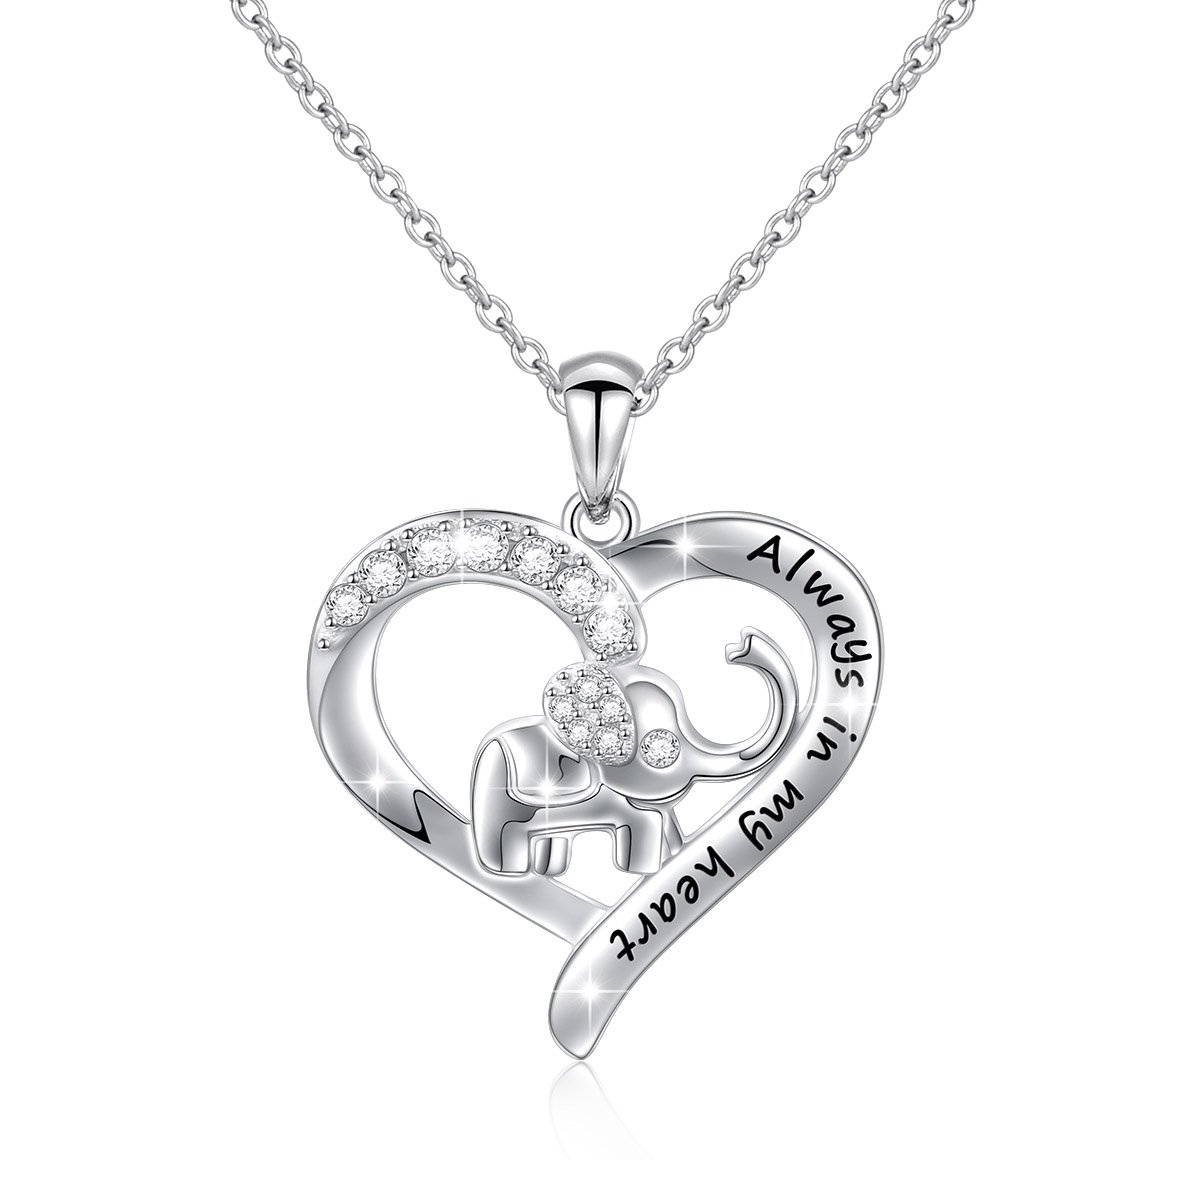 S925 Sterling Silver Lucky Elephant Love Heart Necklace for Women, 18'' Rolo Chain (Engraved Always in my heart)